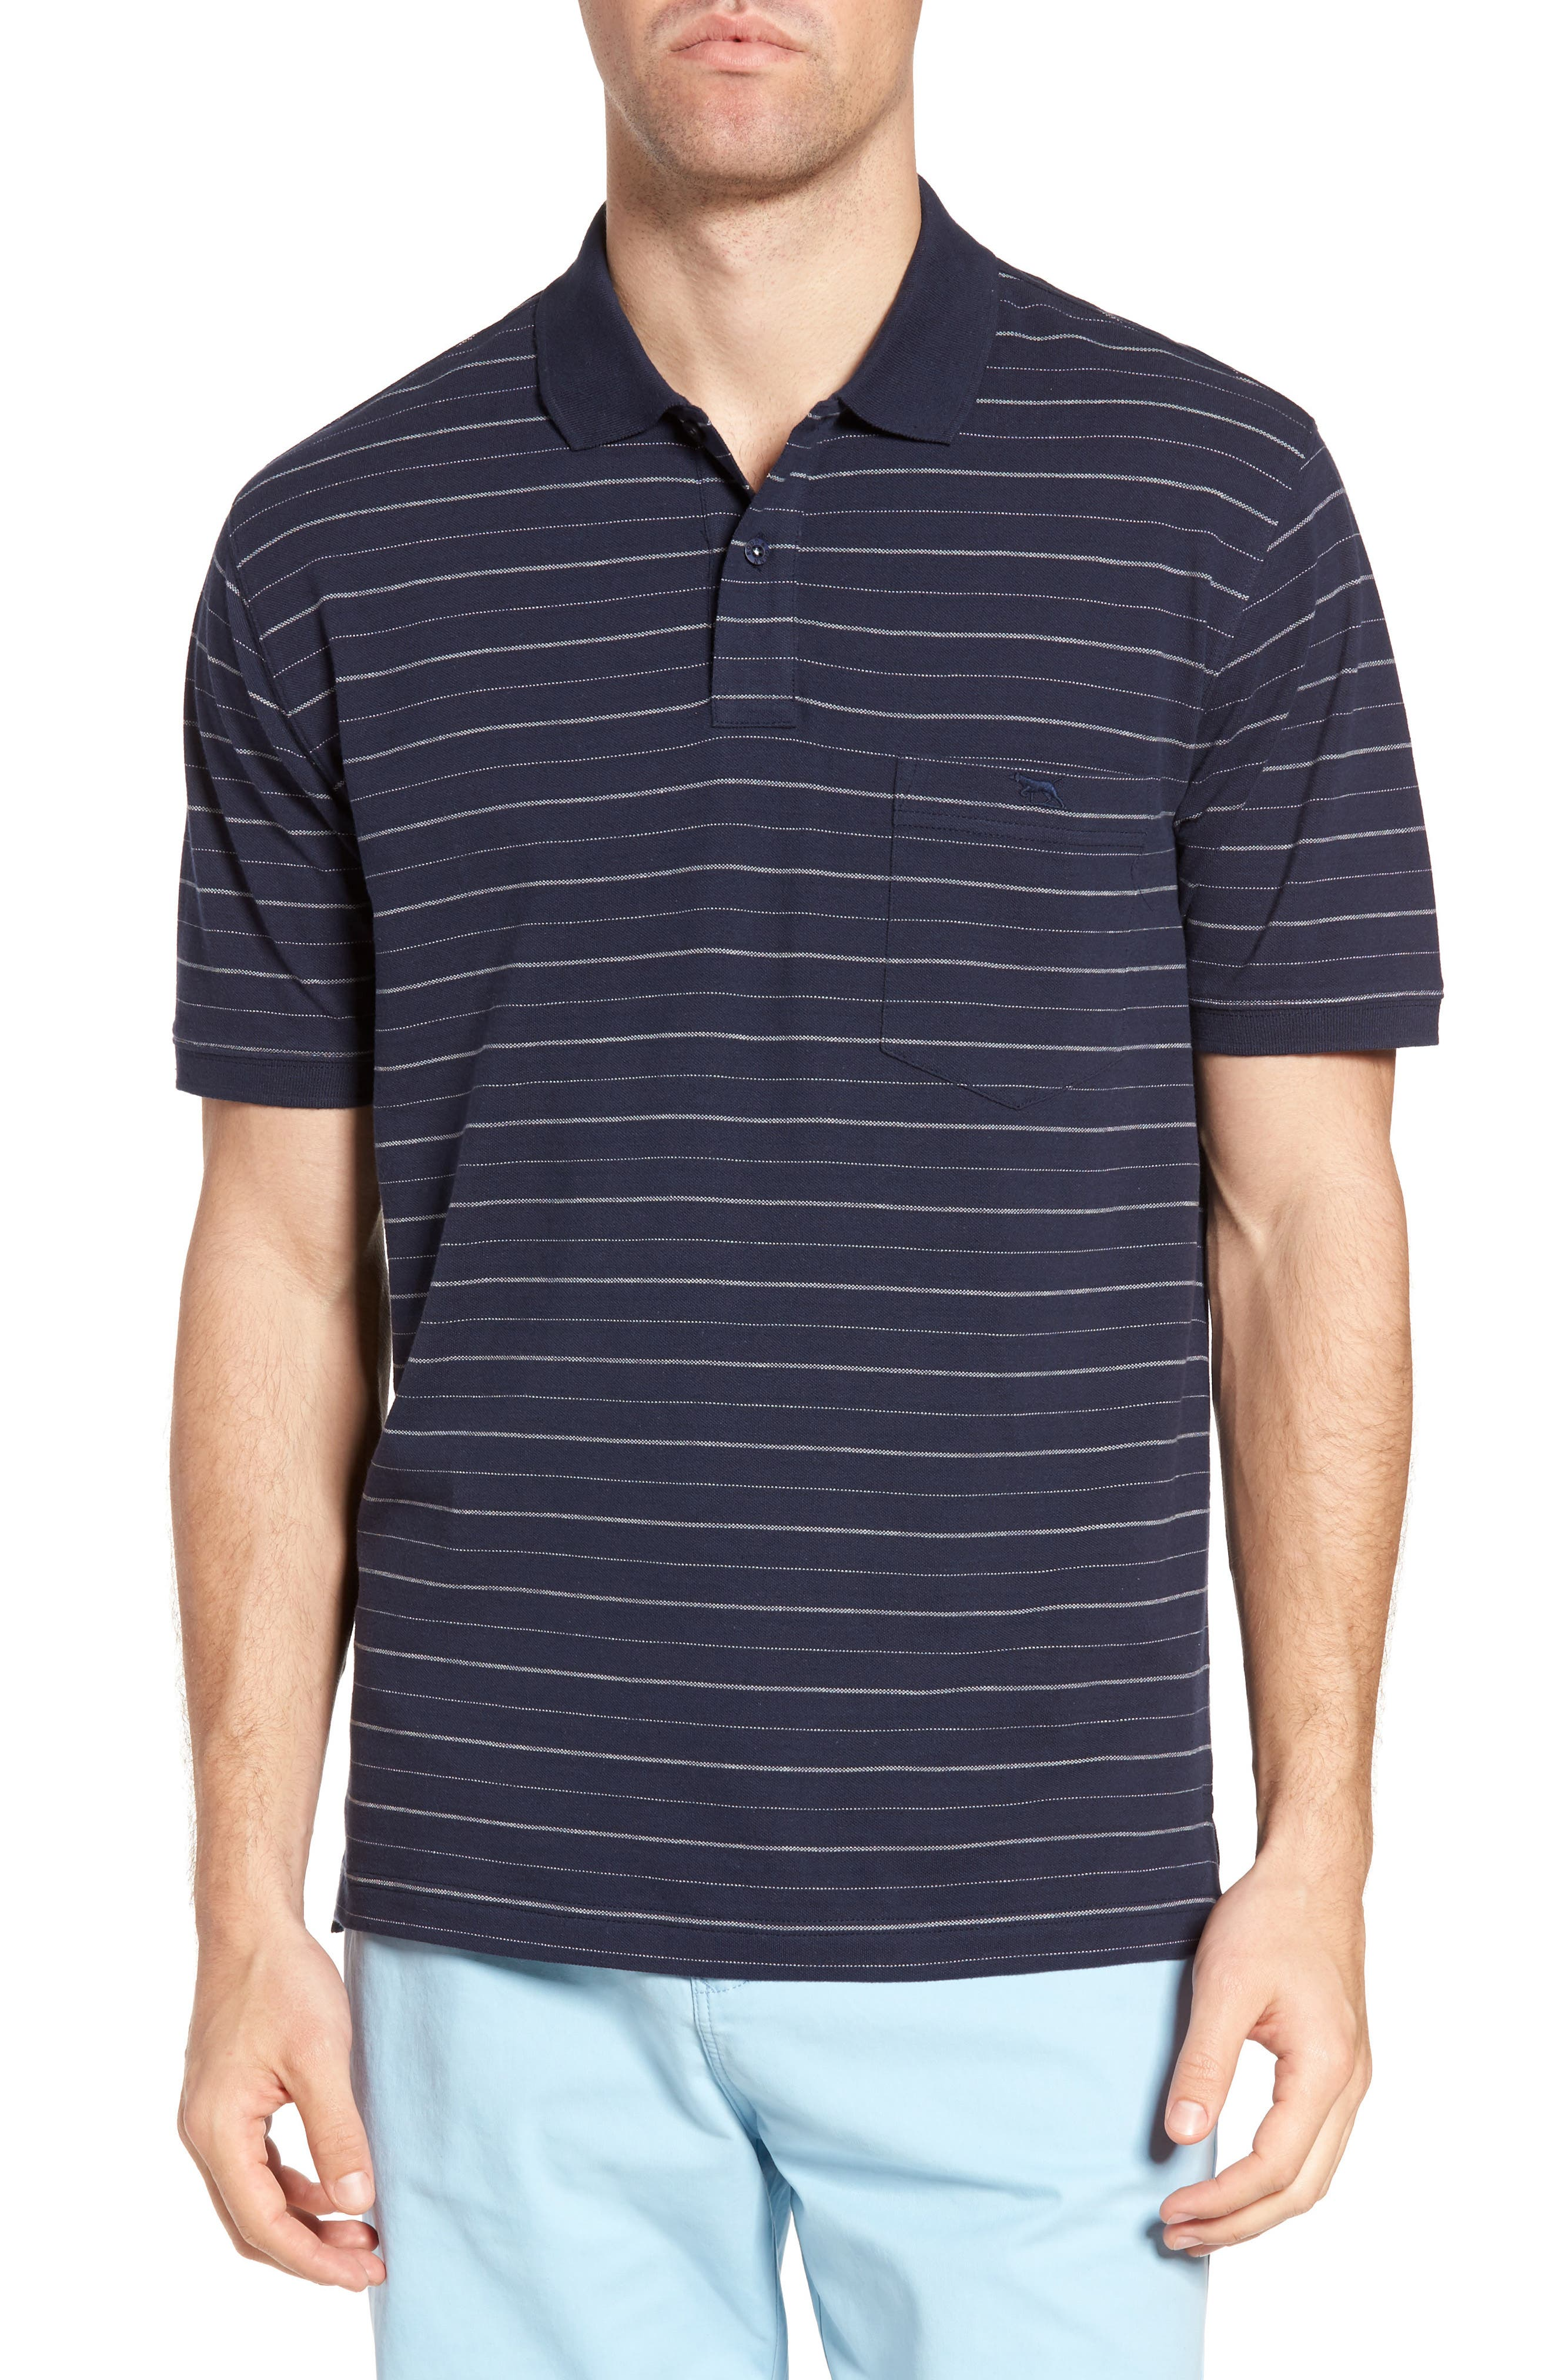 RODD & GUNN Charlgrave Original Fit Stripe Cotton Polo